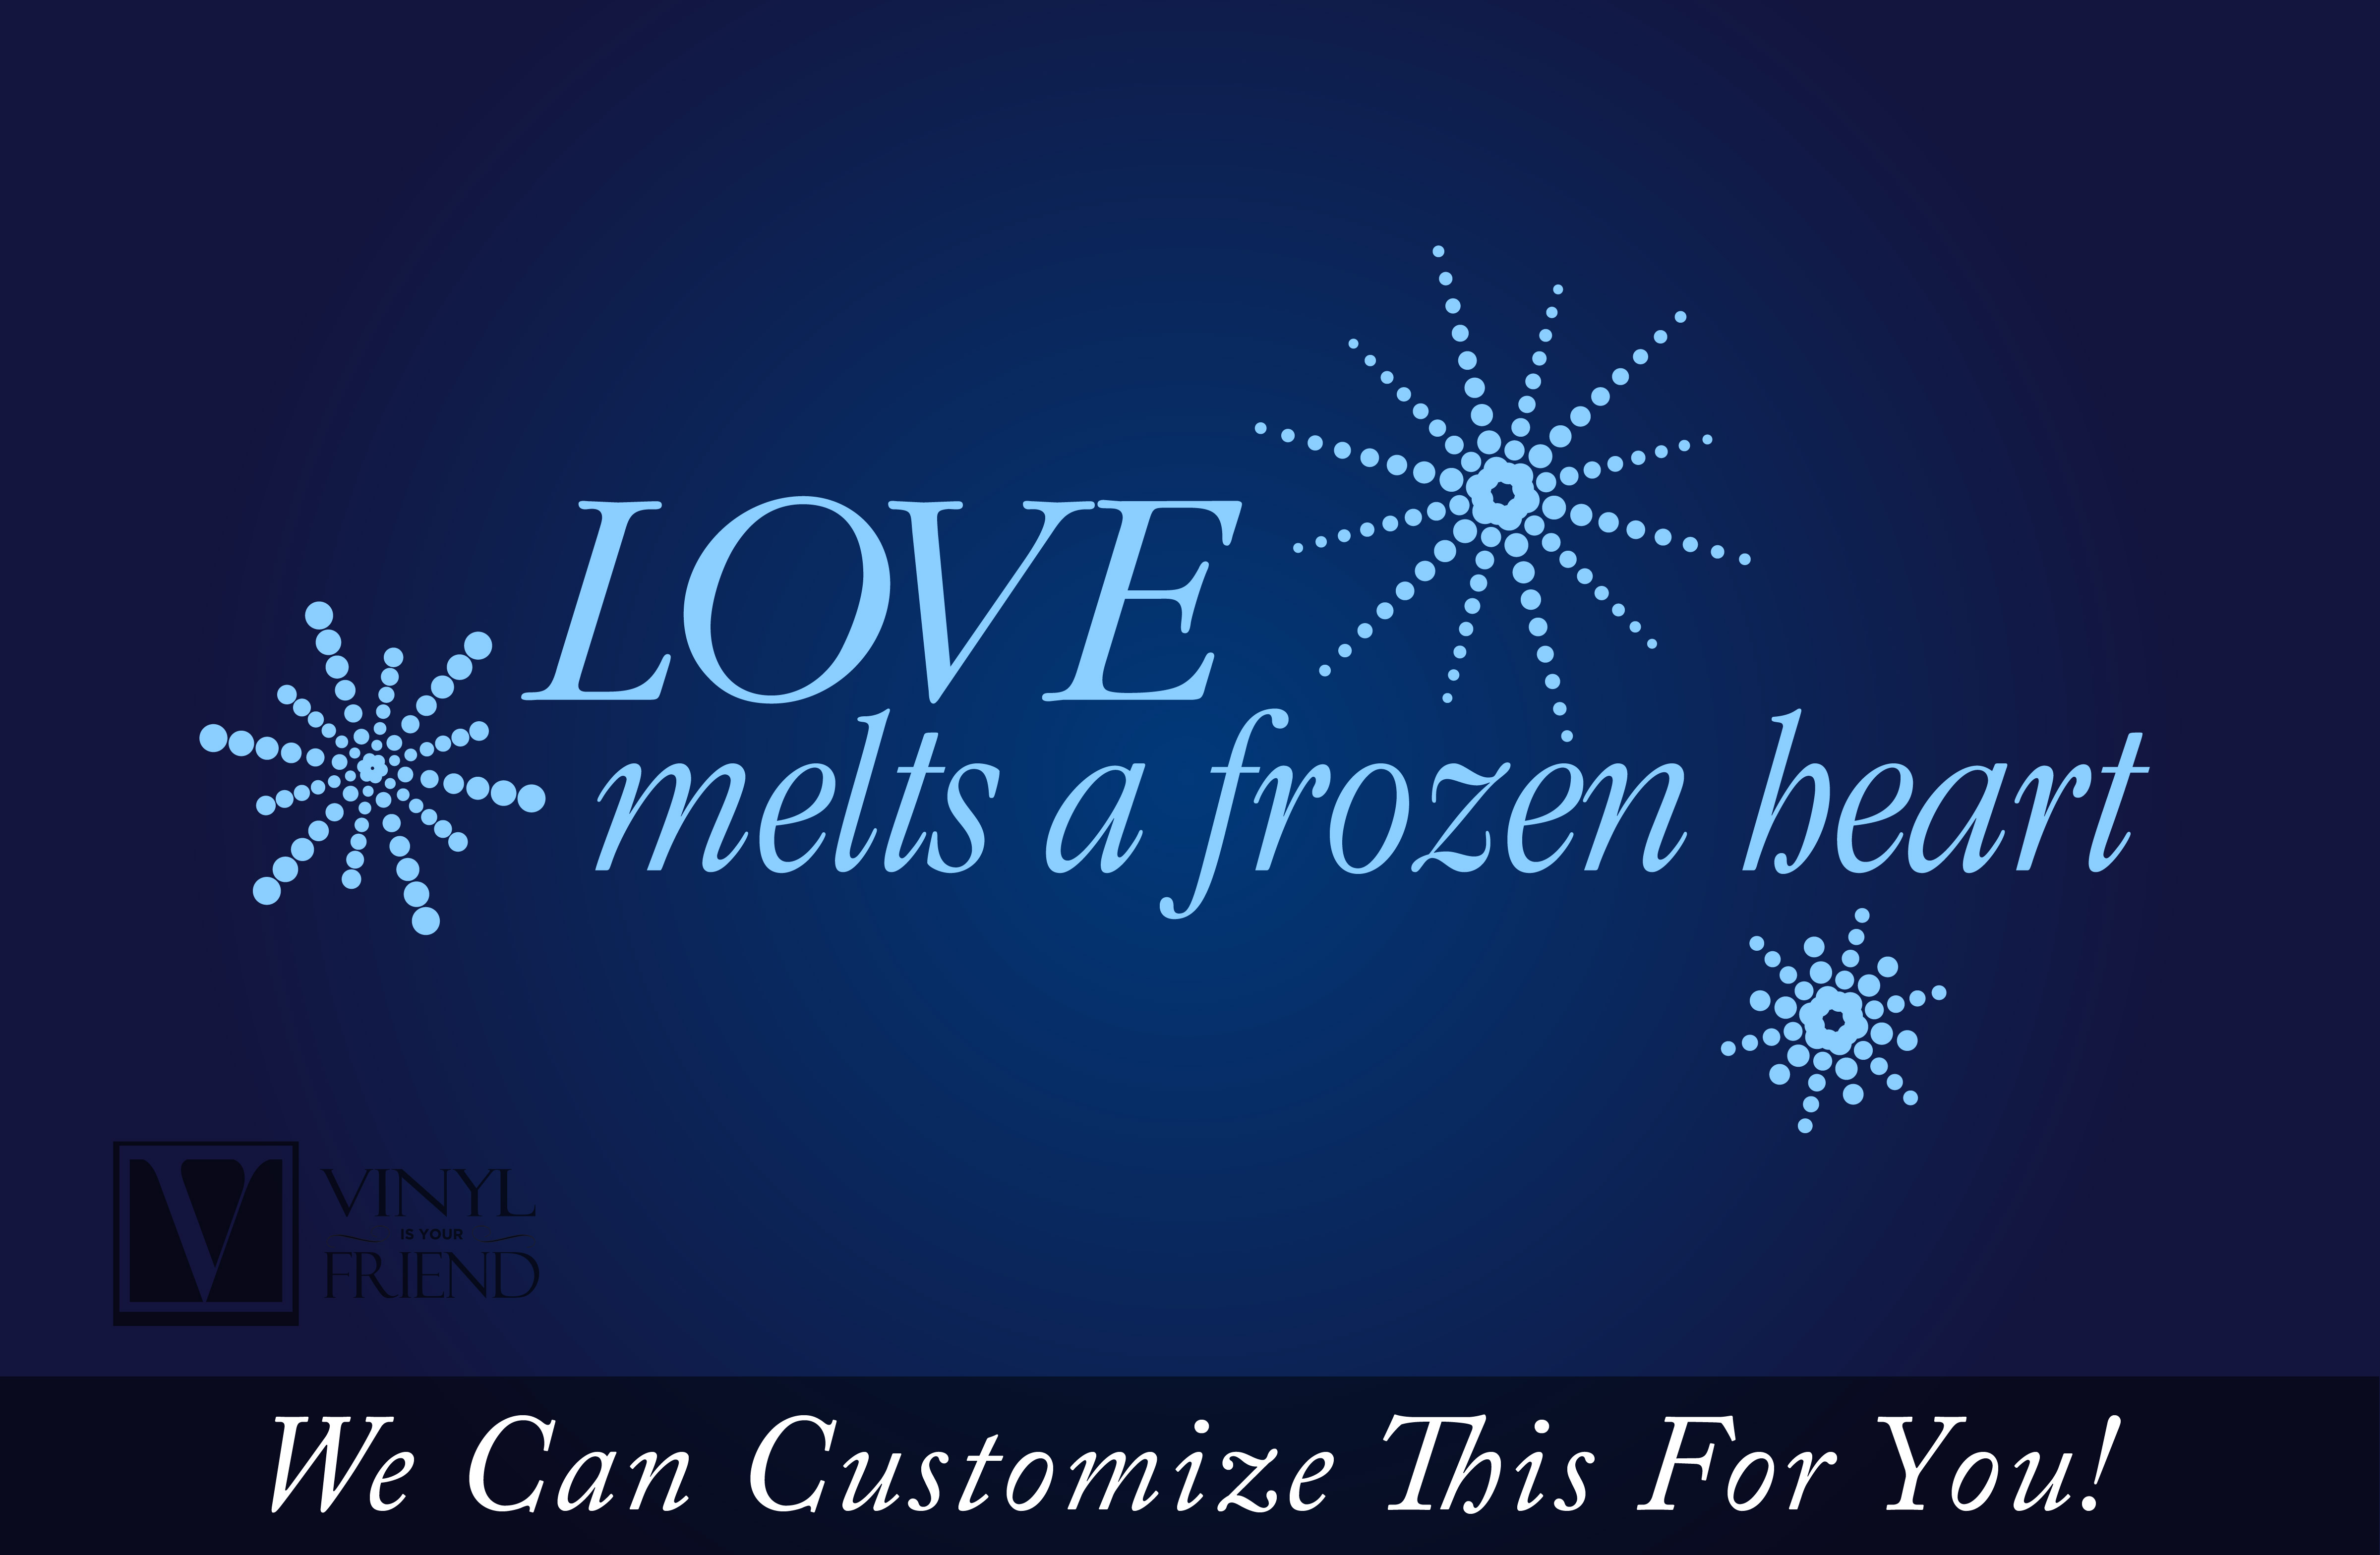 Snowflake Love Quotes Fair Love Melts A Frozen Heart From Frozen With Snowflakes  A Wall